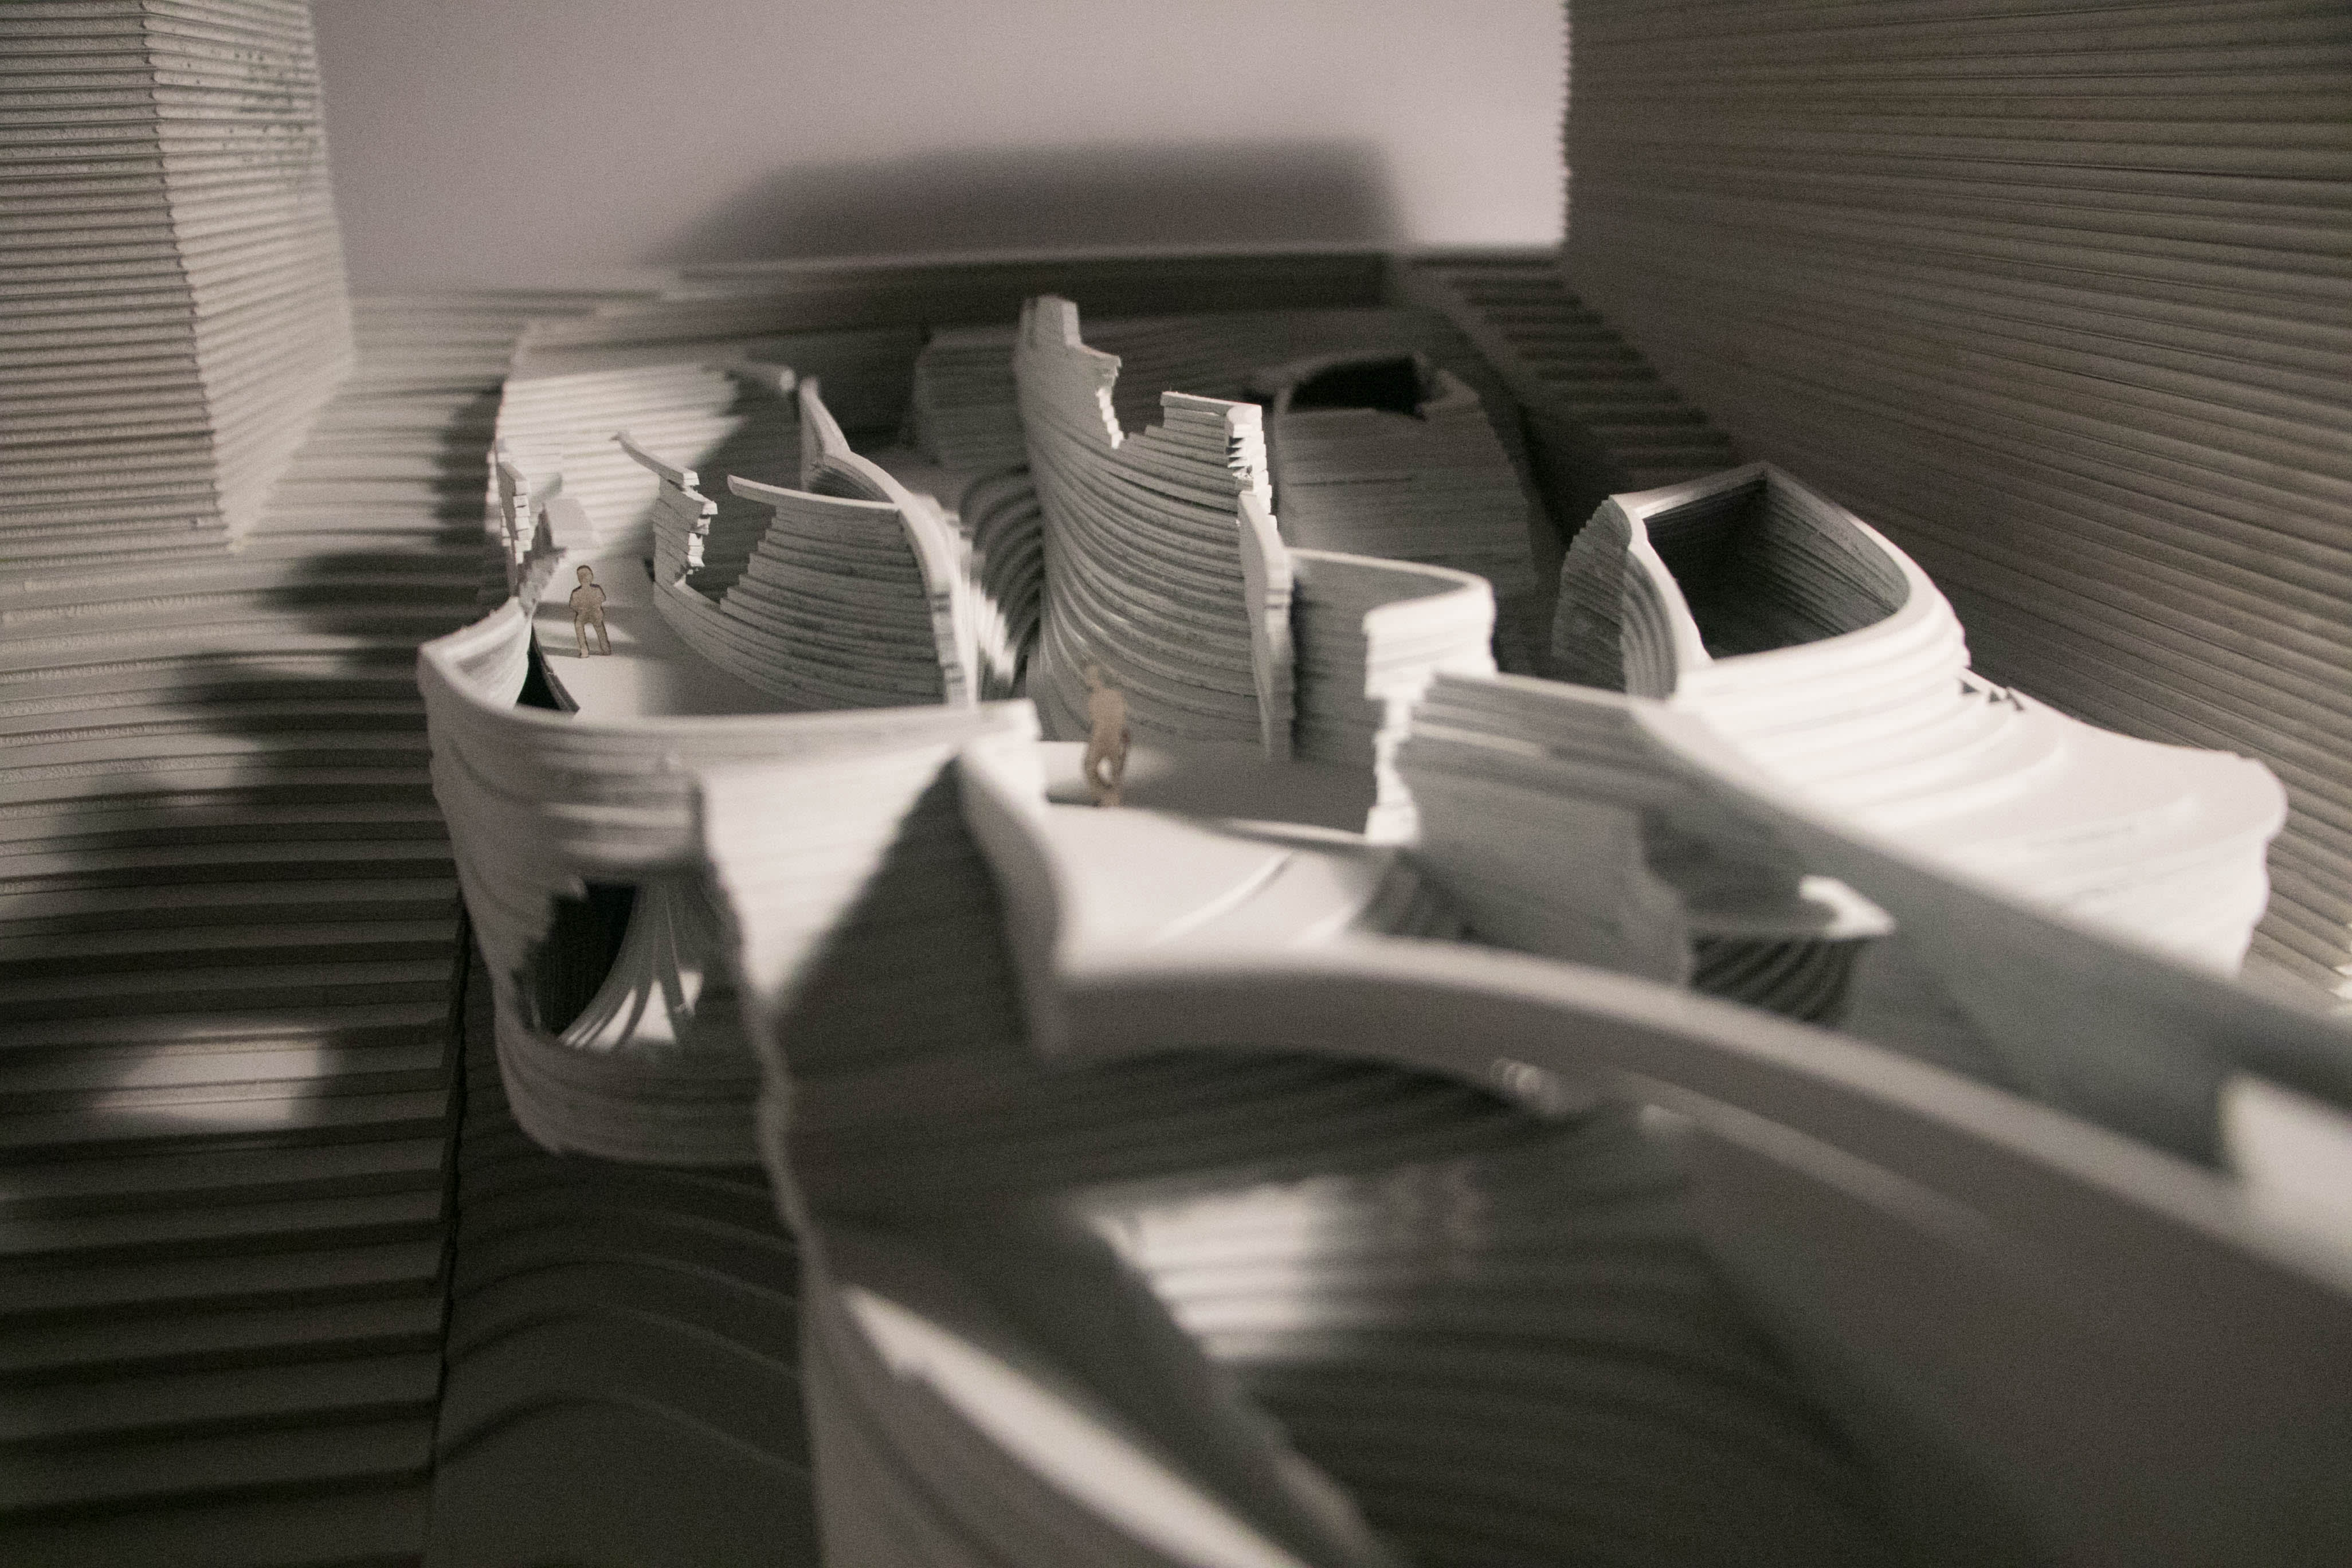 Top shot of architectural model of a kindergarten room